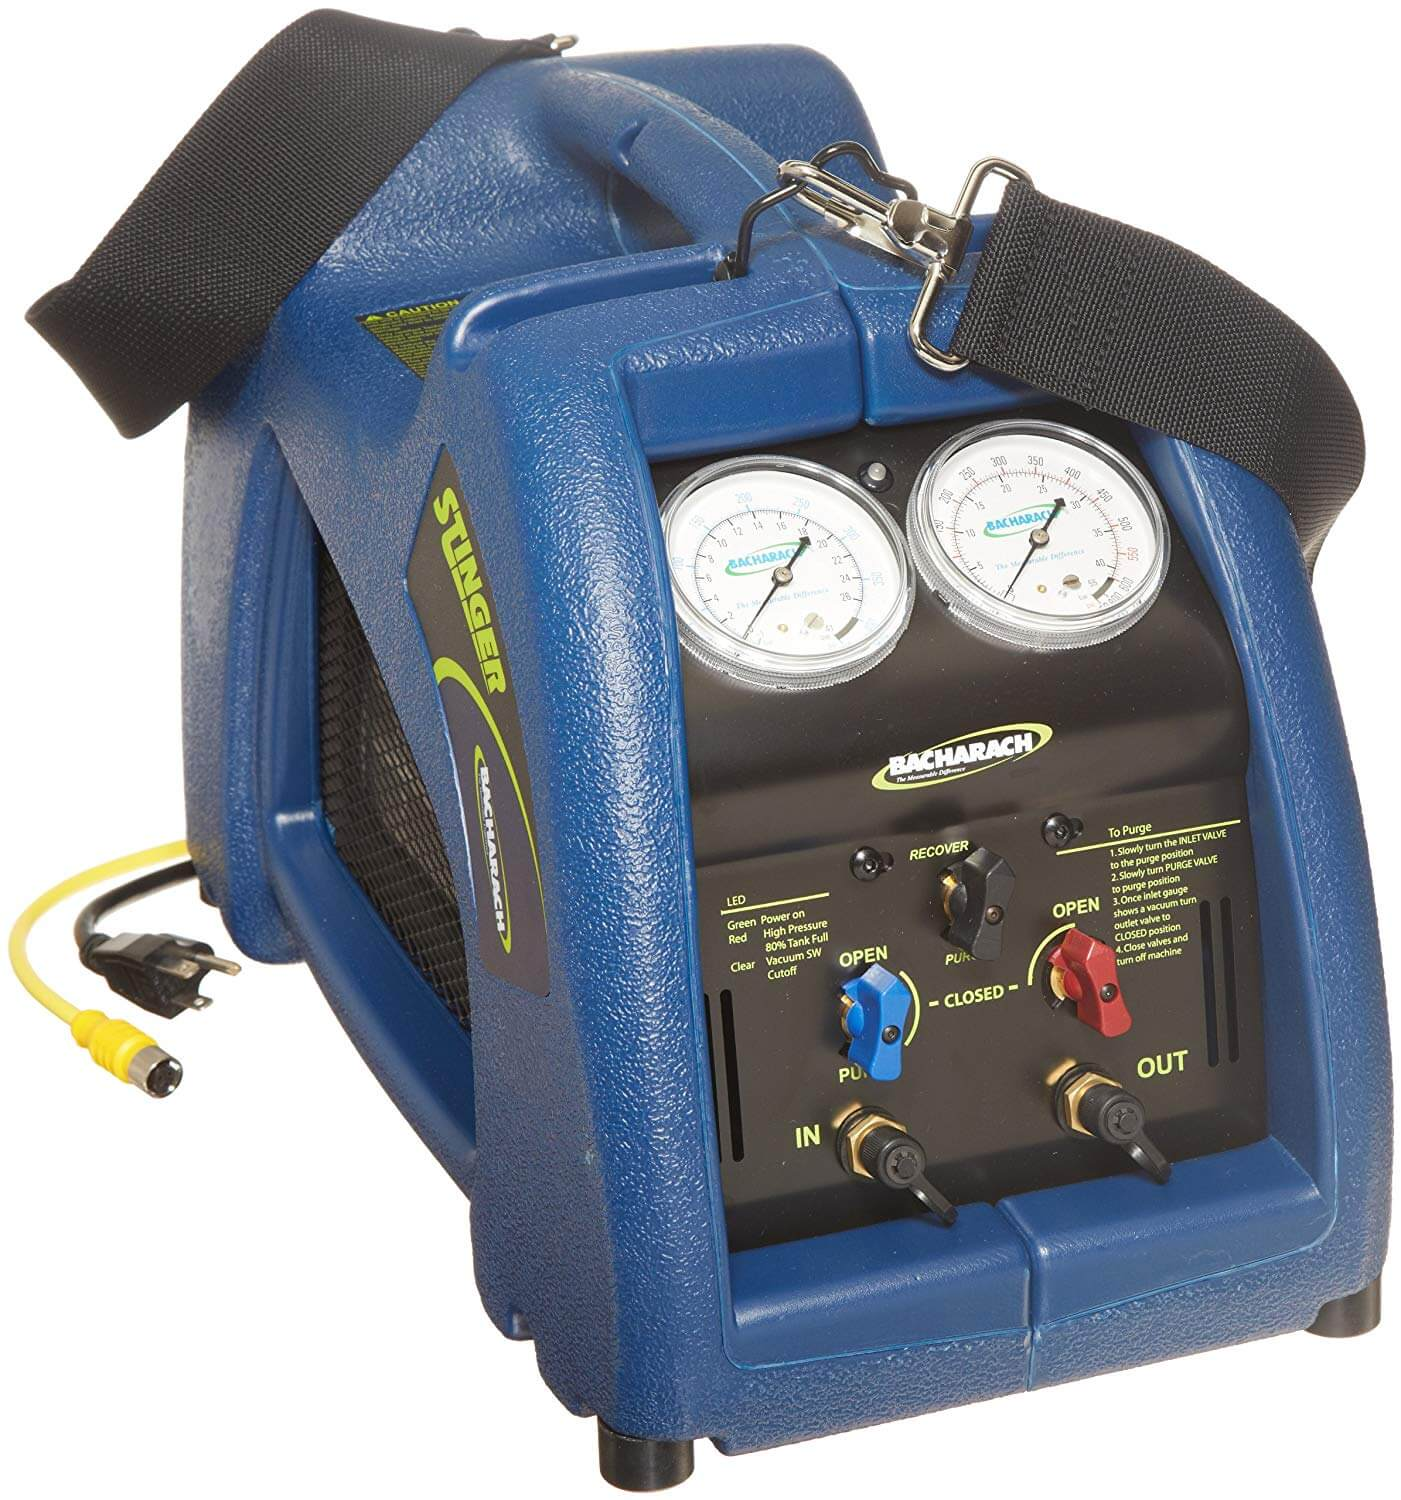 Bacharach Stinger 2006-3801 Refrigerant Recovery Unit